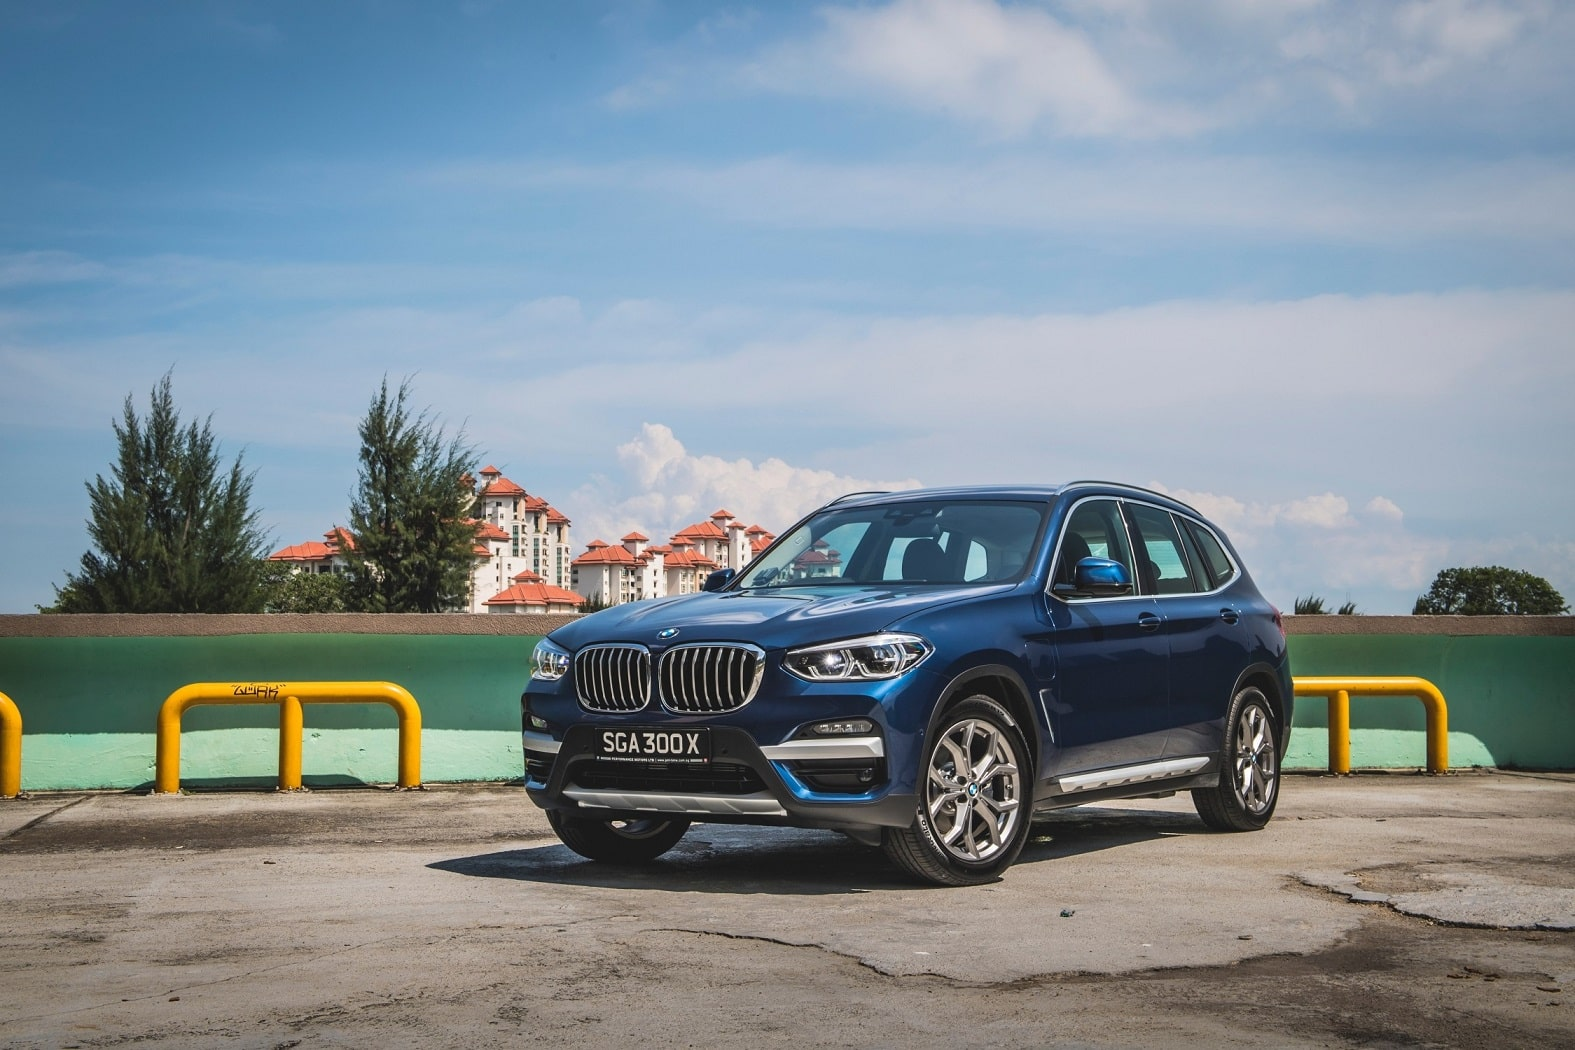 One model, three variants: here's BMW's Power of Choice approach to mobility